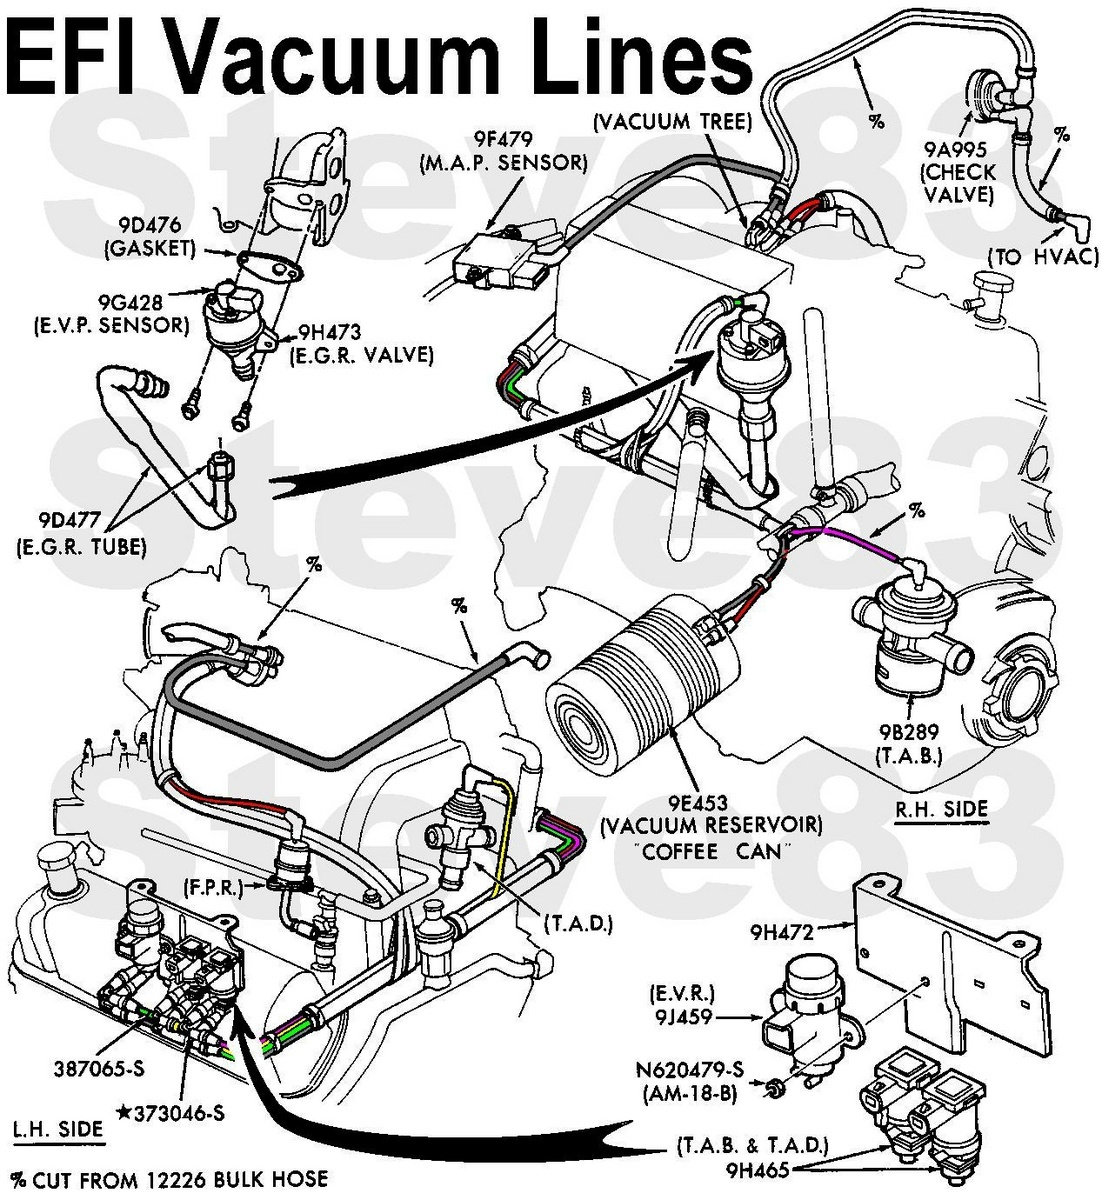 1989 Ford 351 Sensor Schematic Opinions About Wiring Diagram 360 Engine F 150 Questions Is There A For Vacuum Hoses On 1990 Rh Cargurus Com Sizes 302 Vs